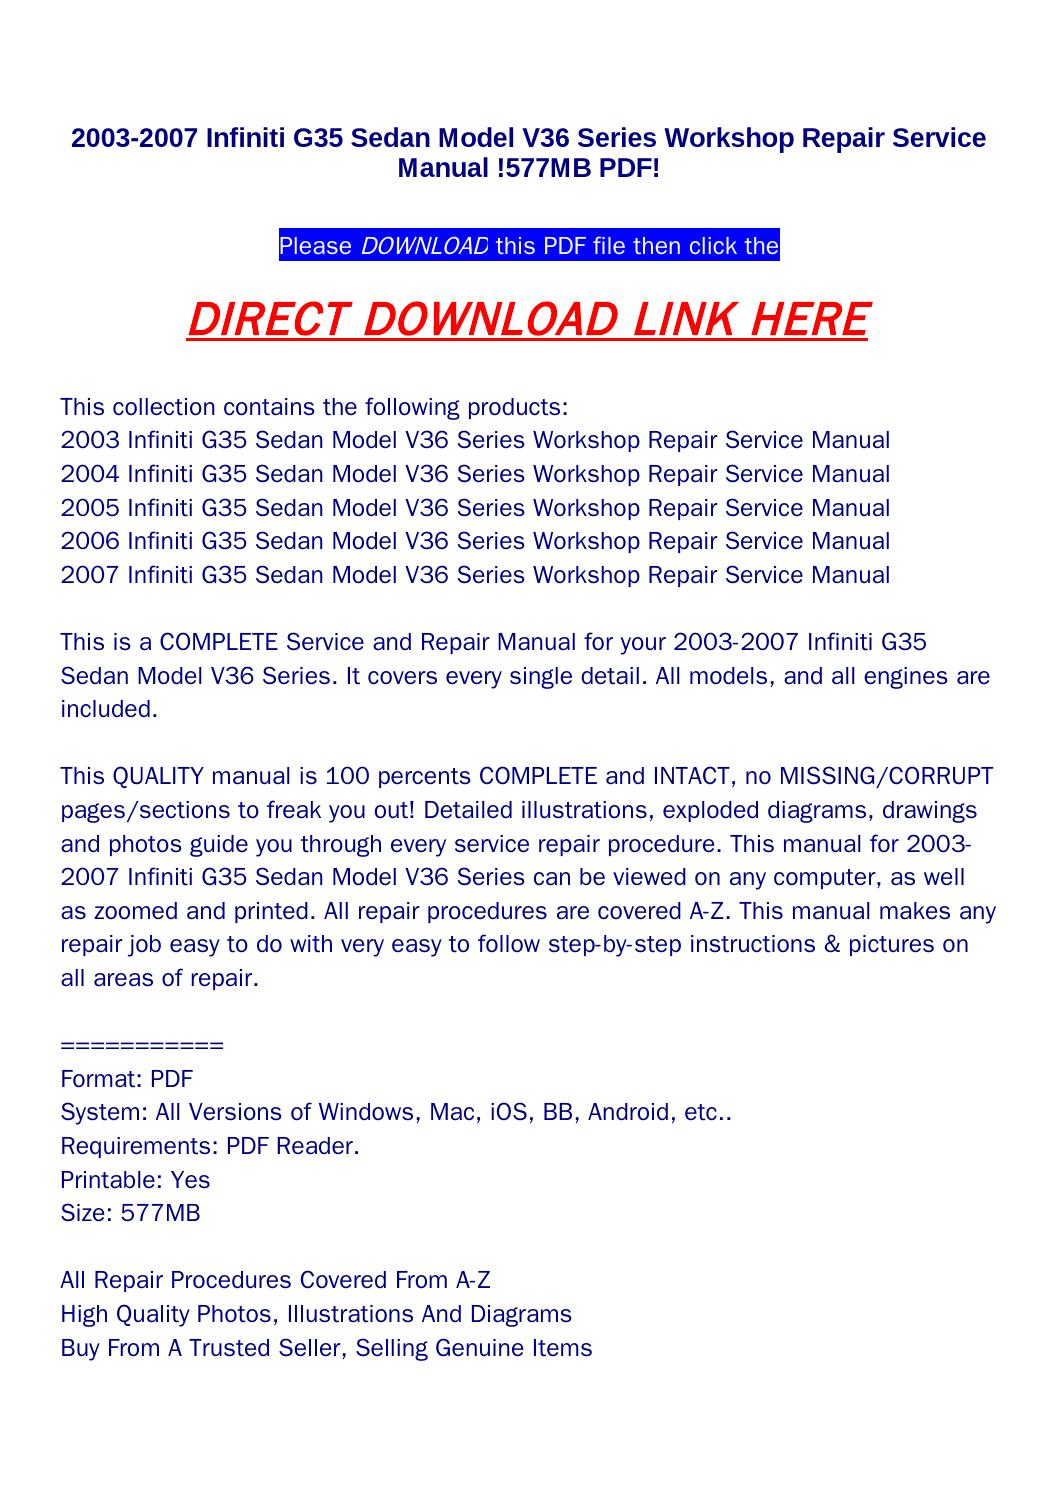 2003 2007 infiniti g35 sedan model v36 series workshop repair service manual  !577mb pdf! by returnqqv - issuu